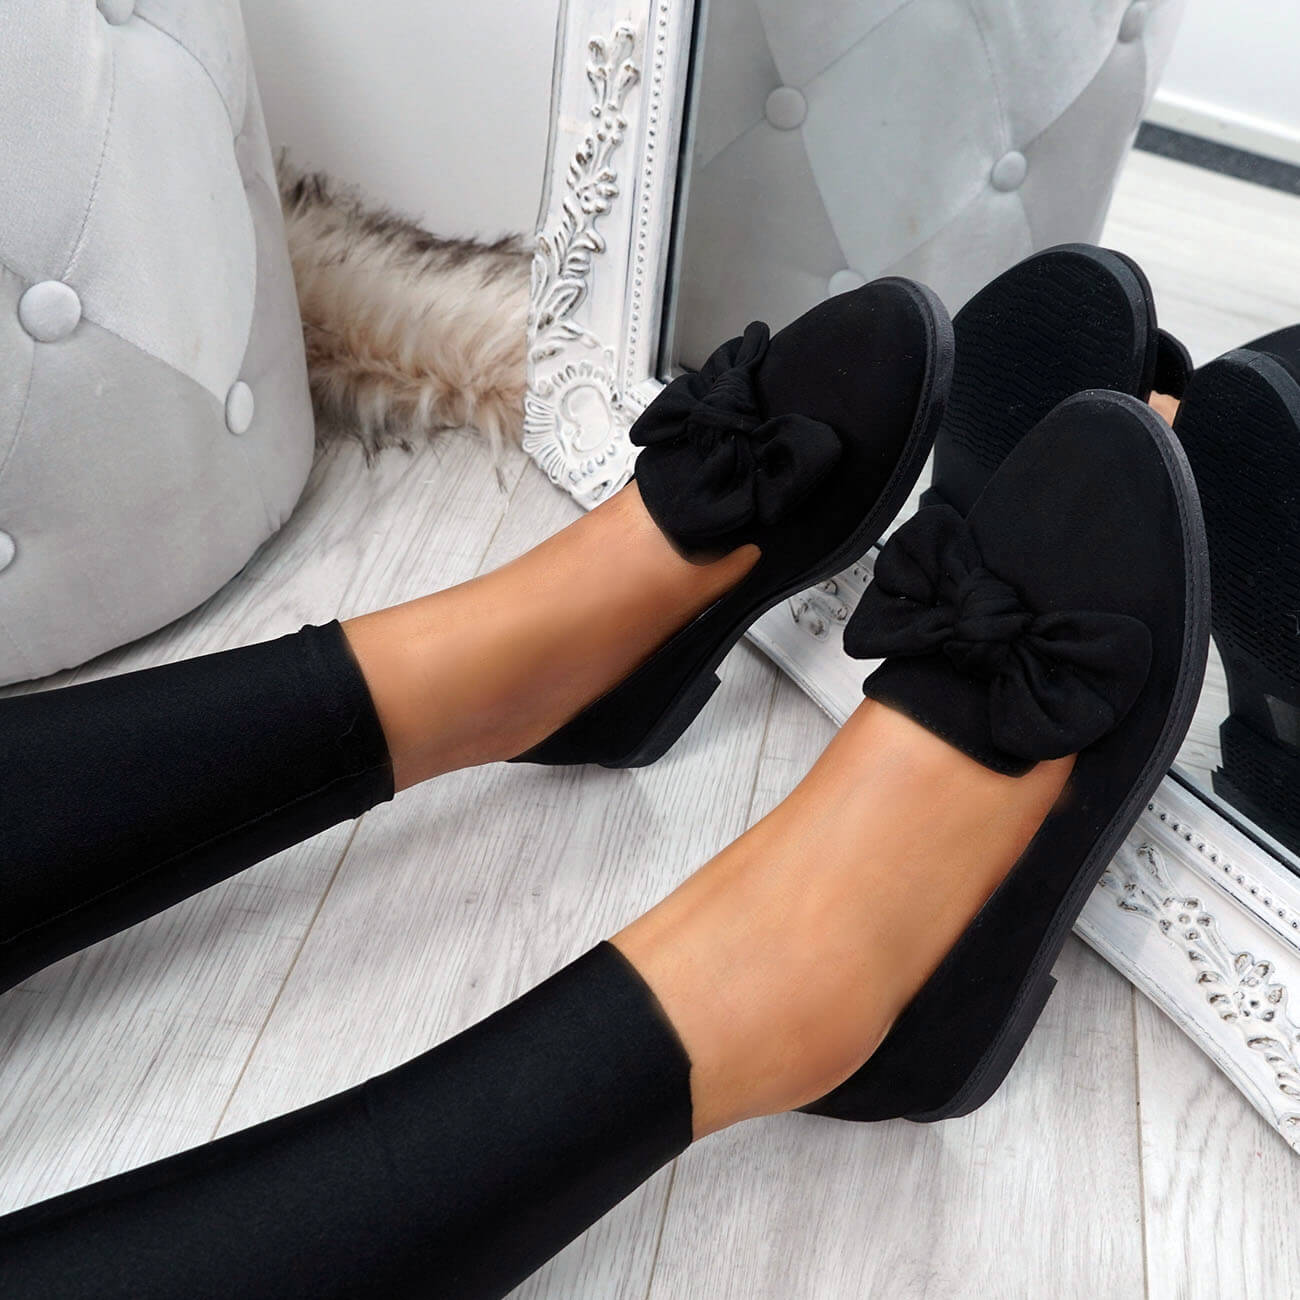 WOMENS-LADIES-BOW-BALLERINA-PUMPS-FLATS-SLIP-ON-BALLET-CASUAL-WORK-SHOES-SIZE thumbnail 12